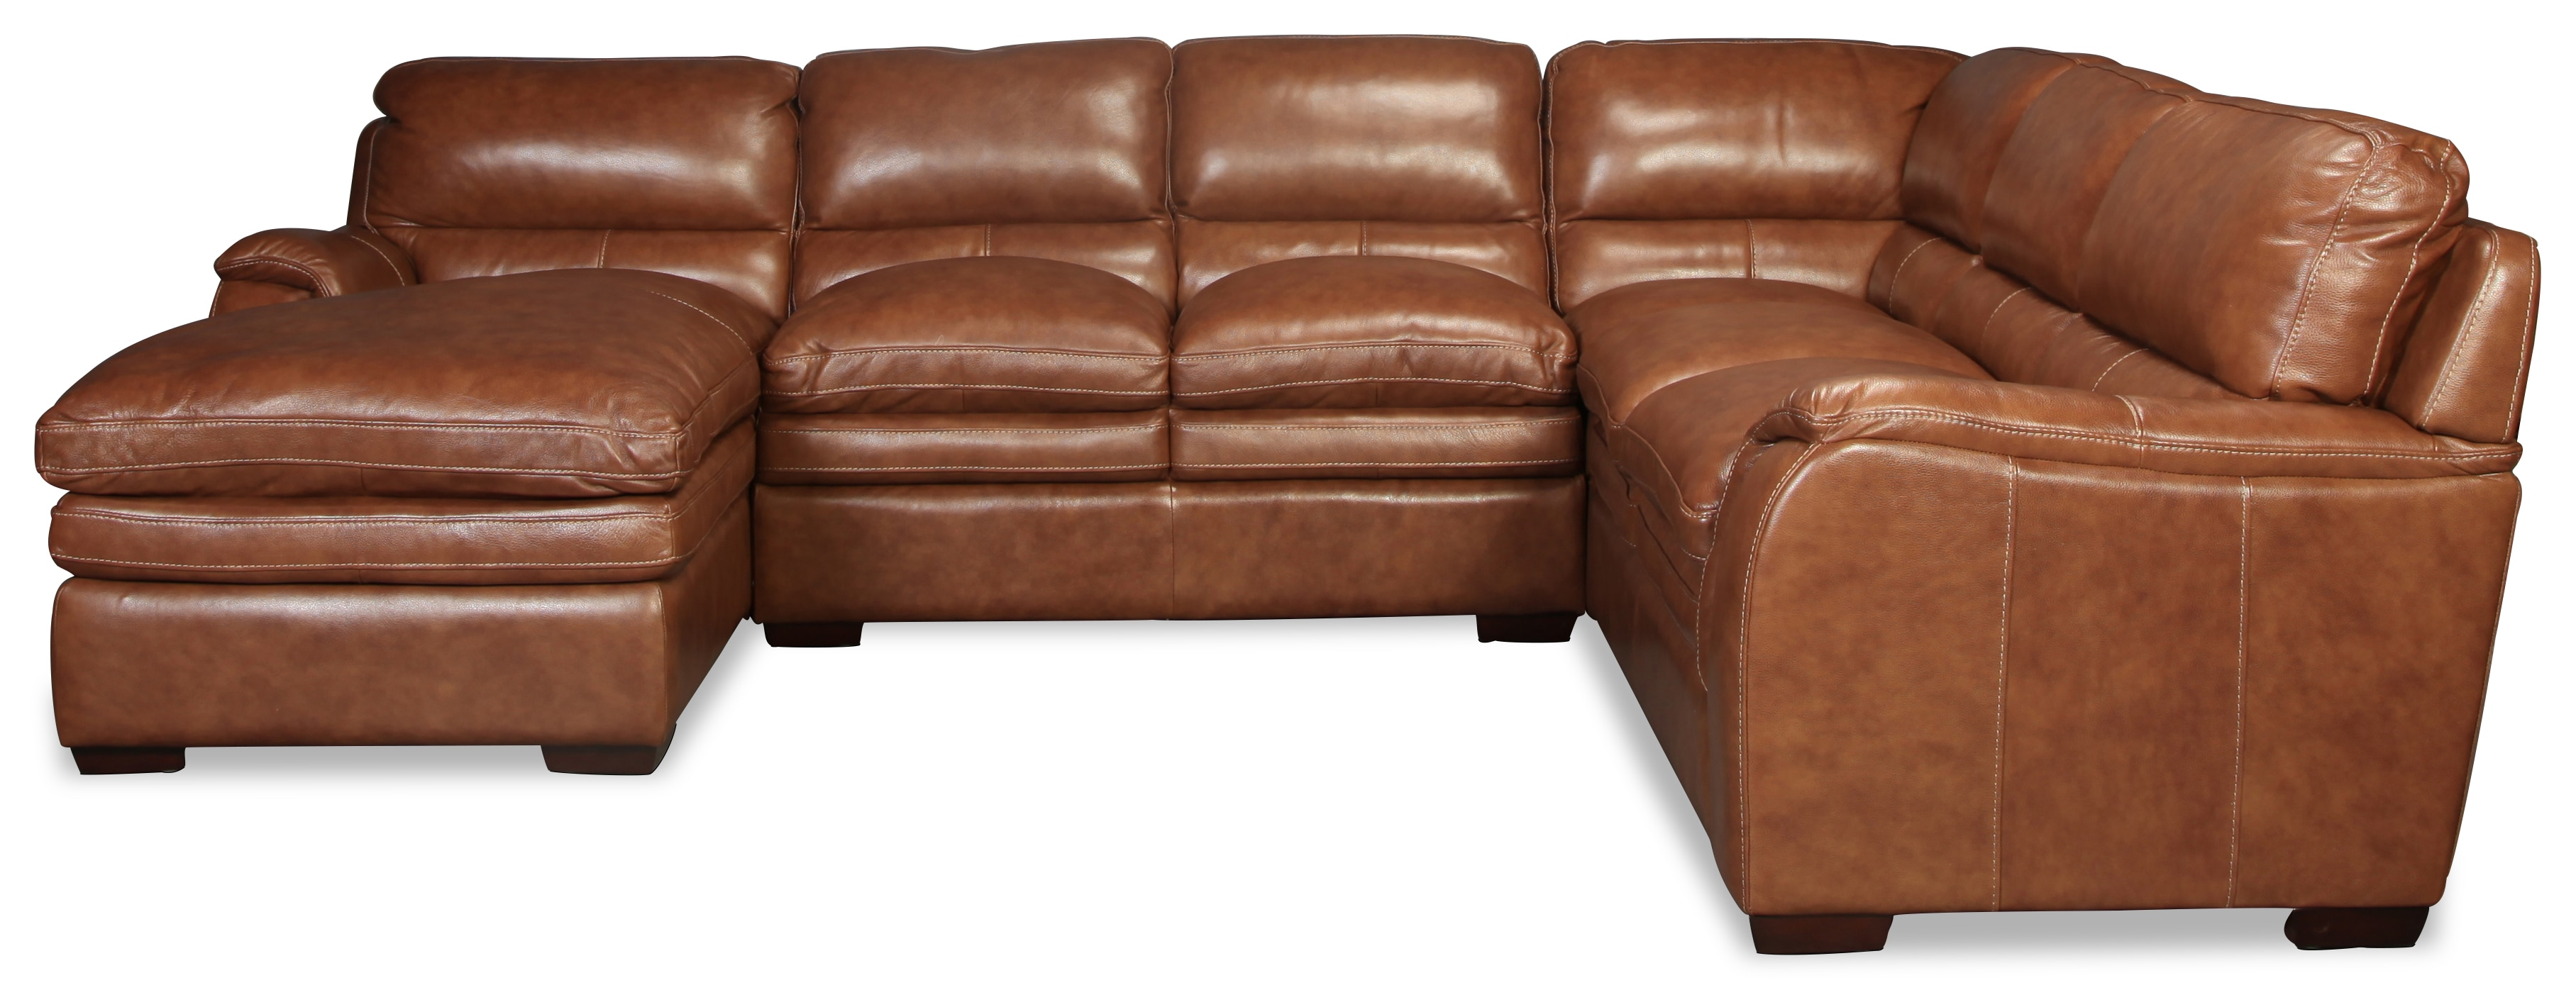 Meridian 3 pc. Leather Sectional